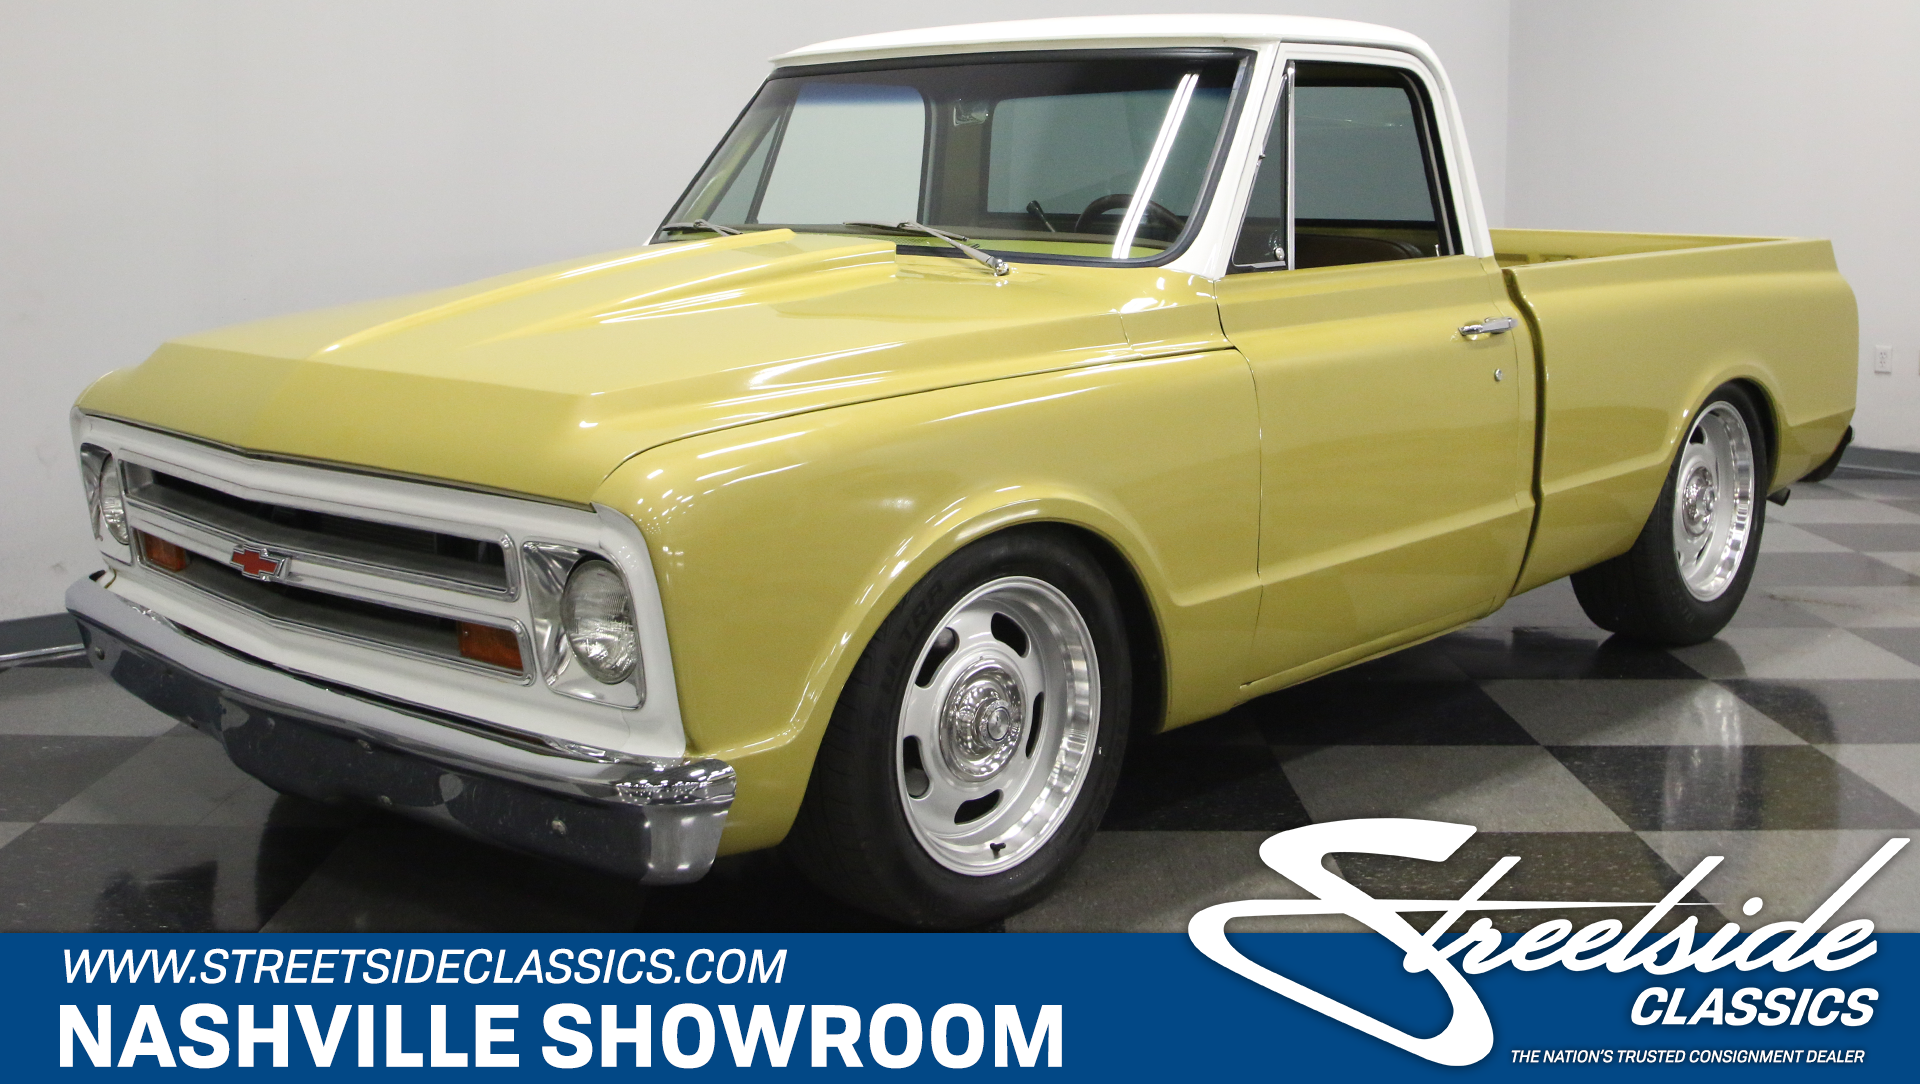 1968 Chevrolet C10 Streetside Classics The Nations Trusted Chevy Pick Up Show More Photos